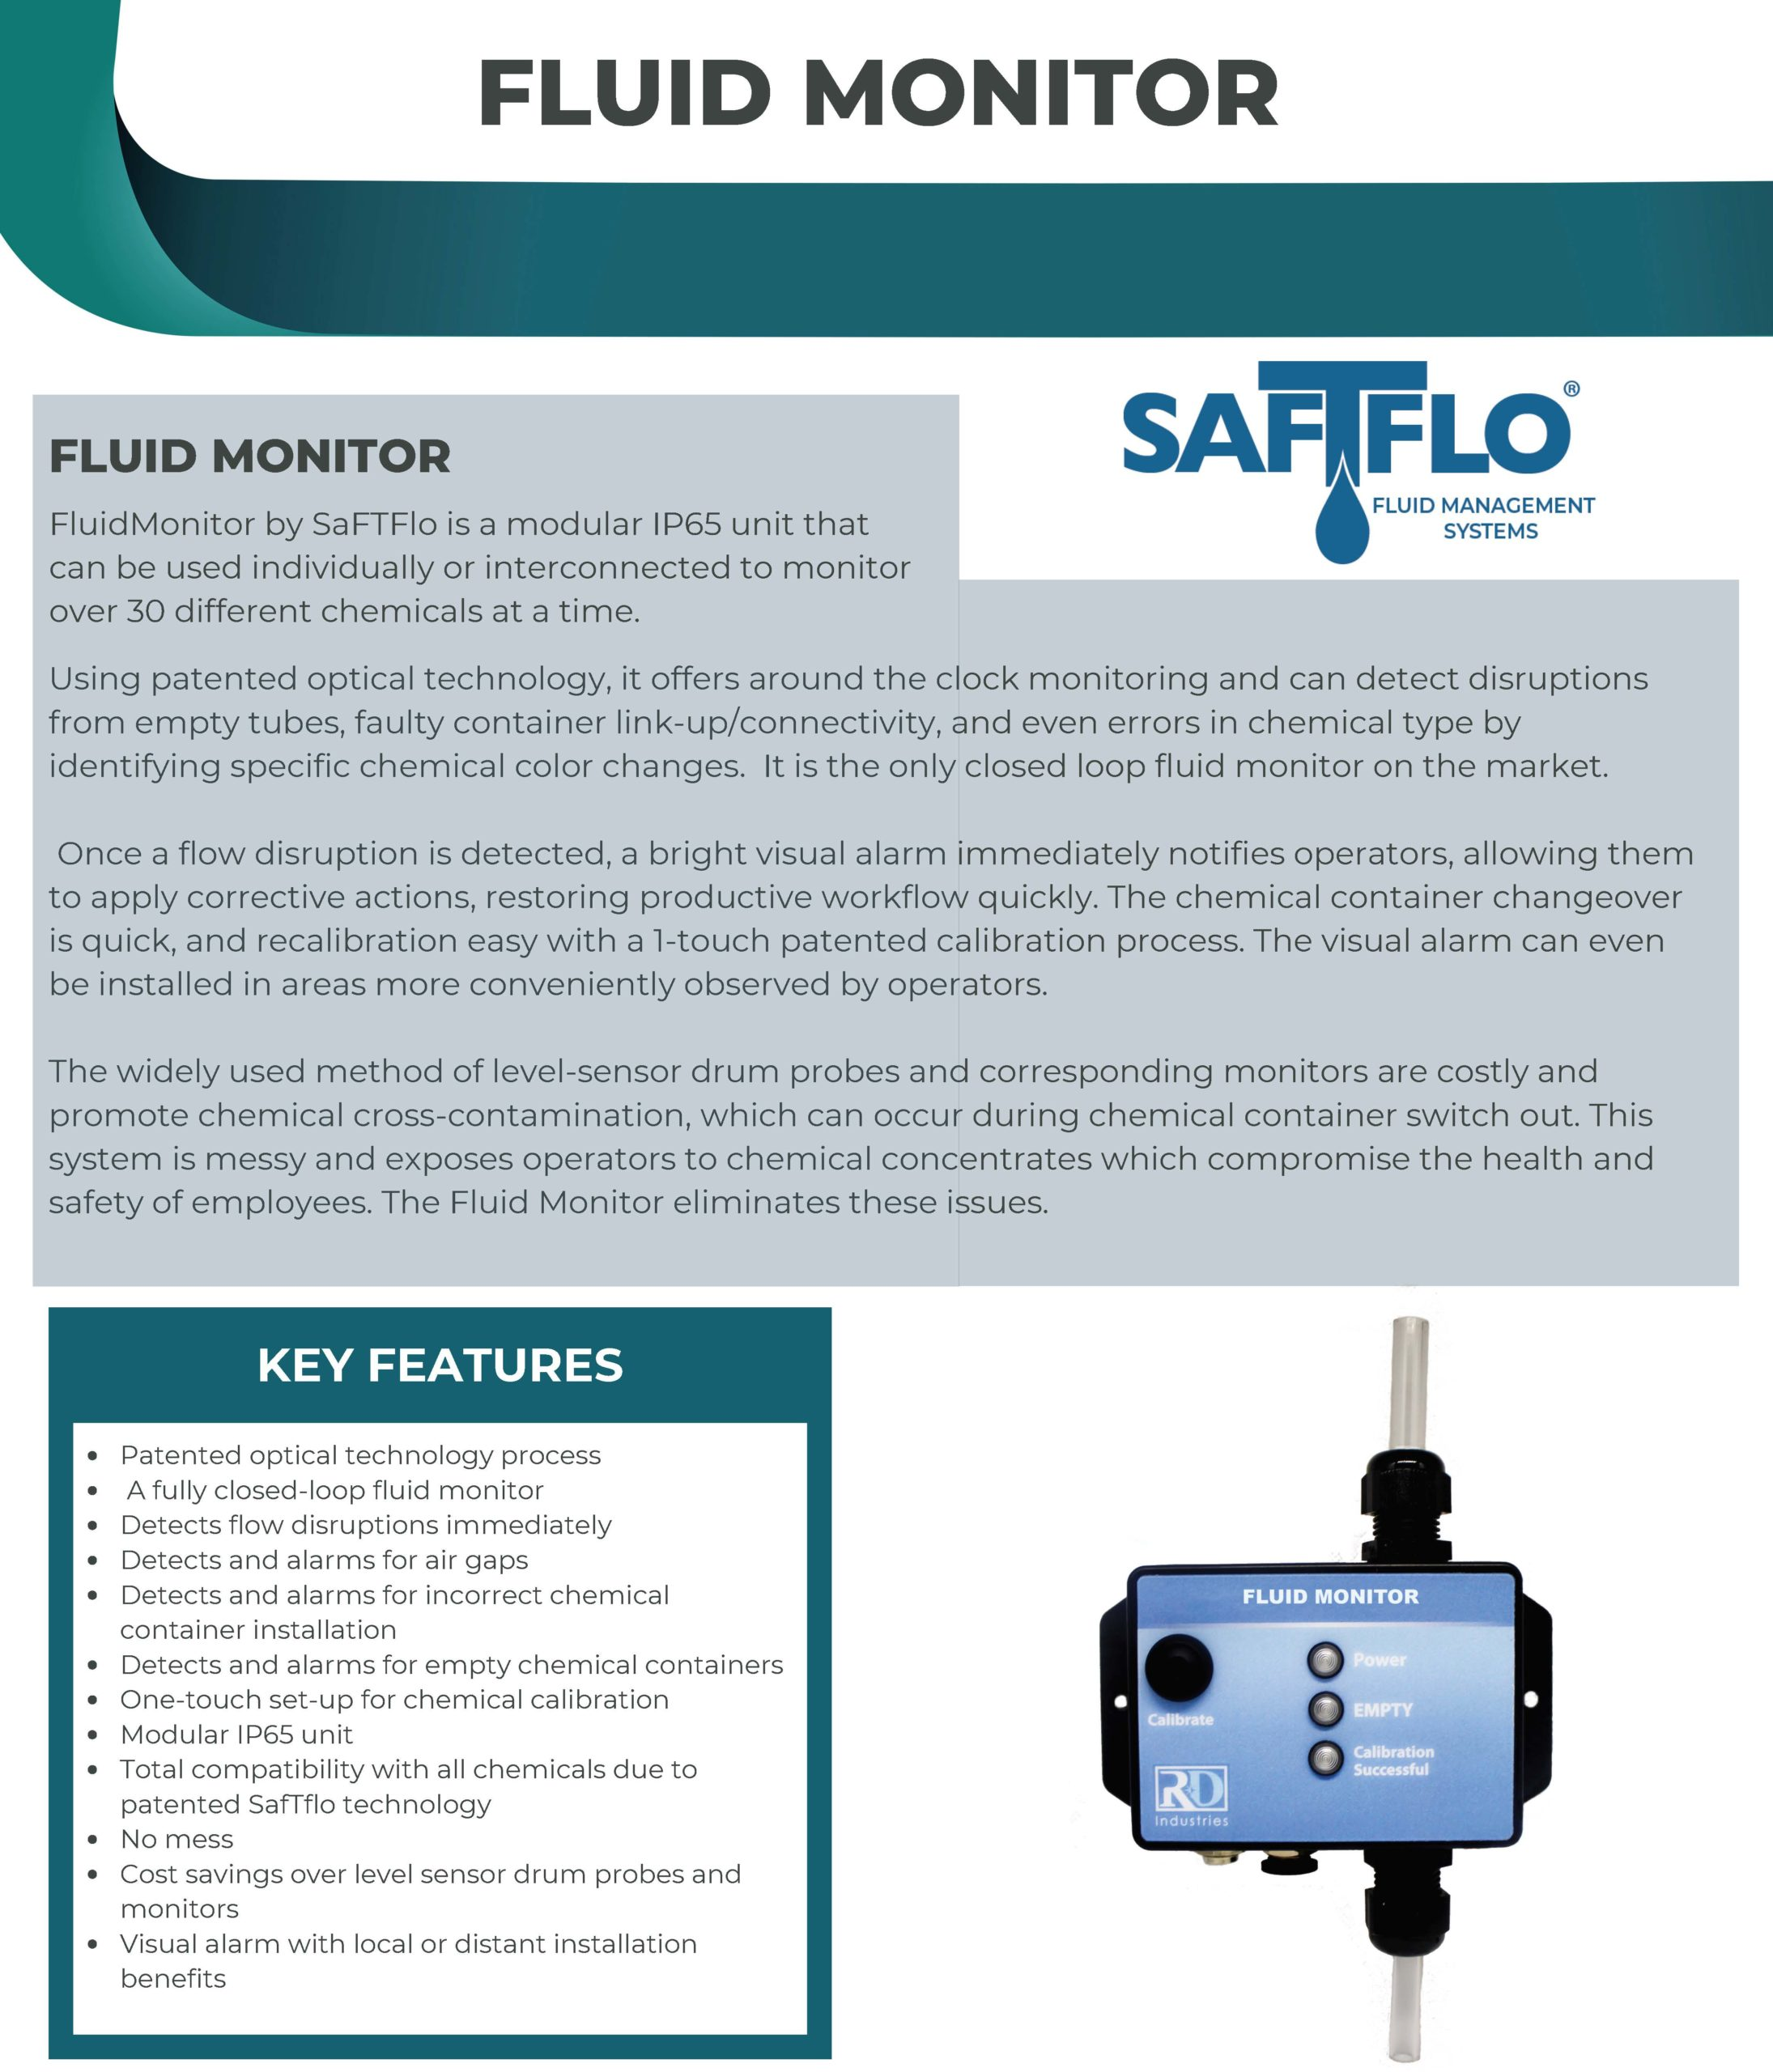 SafTflo Fluid Management System | Fluid Monitor